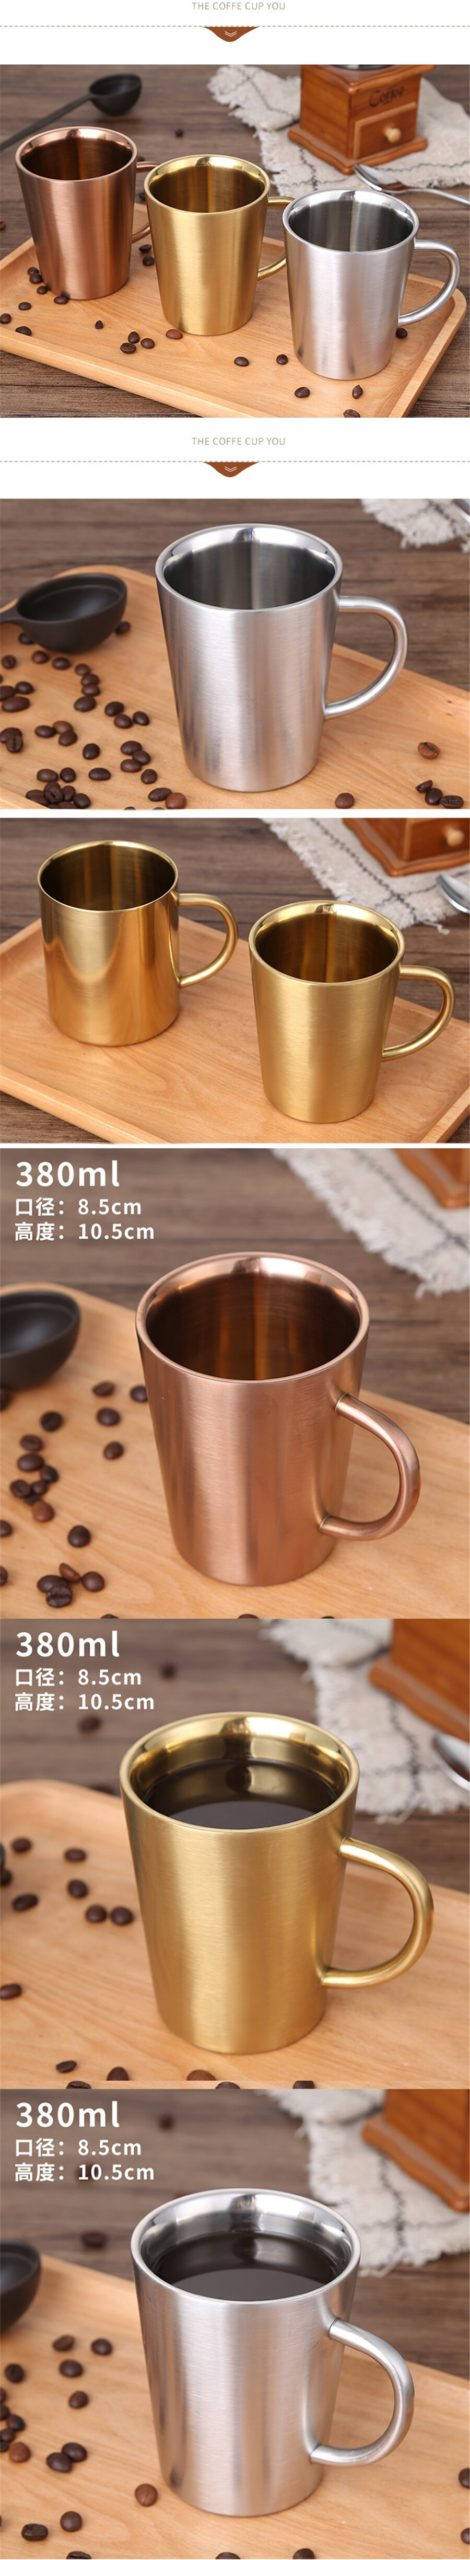 380ml 304 Stainless Steel coffee cups Coffee cupDouble layer heat protection European style Mug Cappuccino flower cups Latte